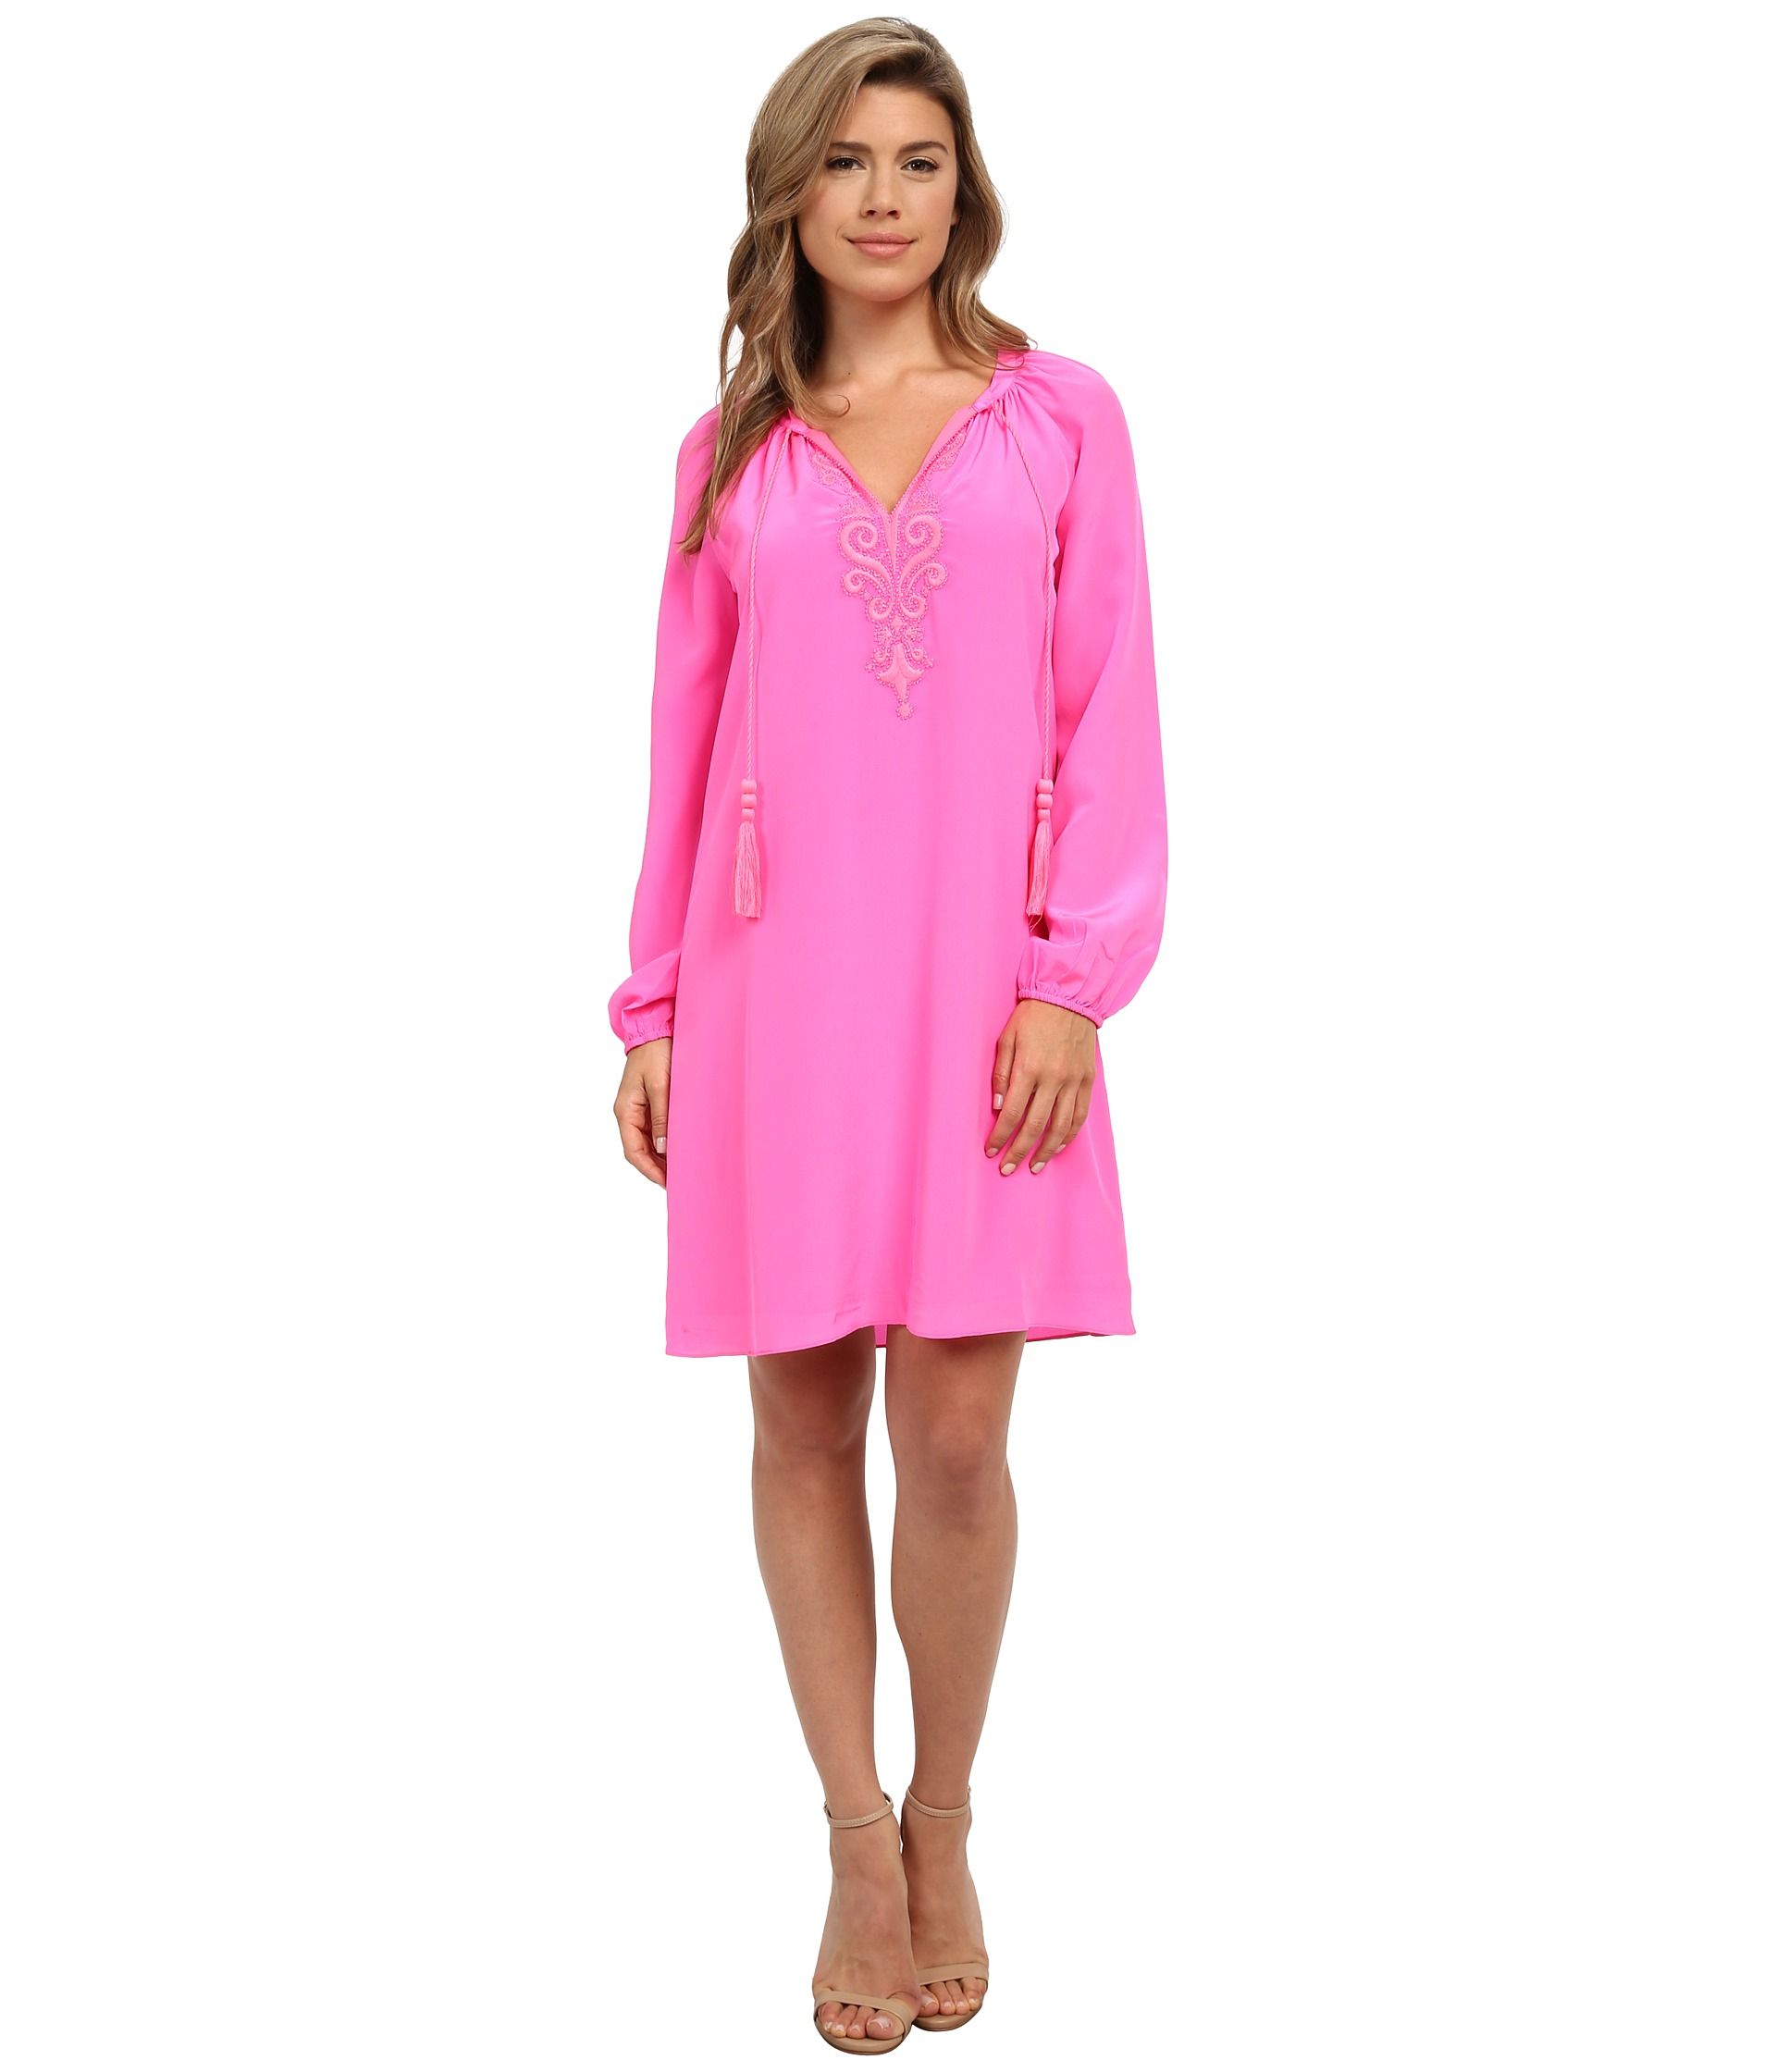 Lilly pulitzer Roslyn Tunic Dress in Pink | Lyst